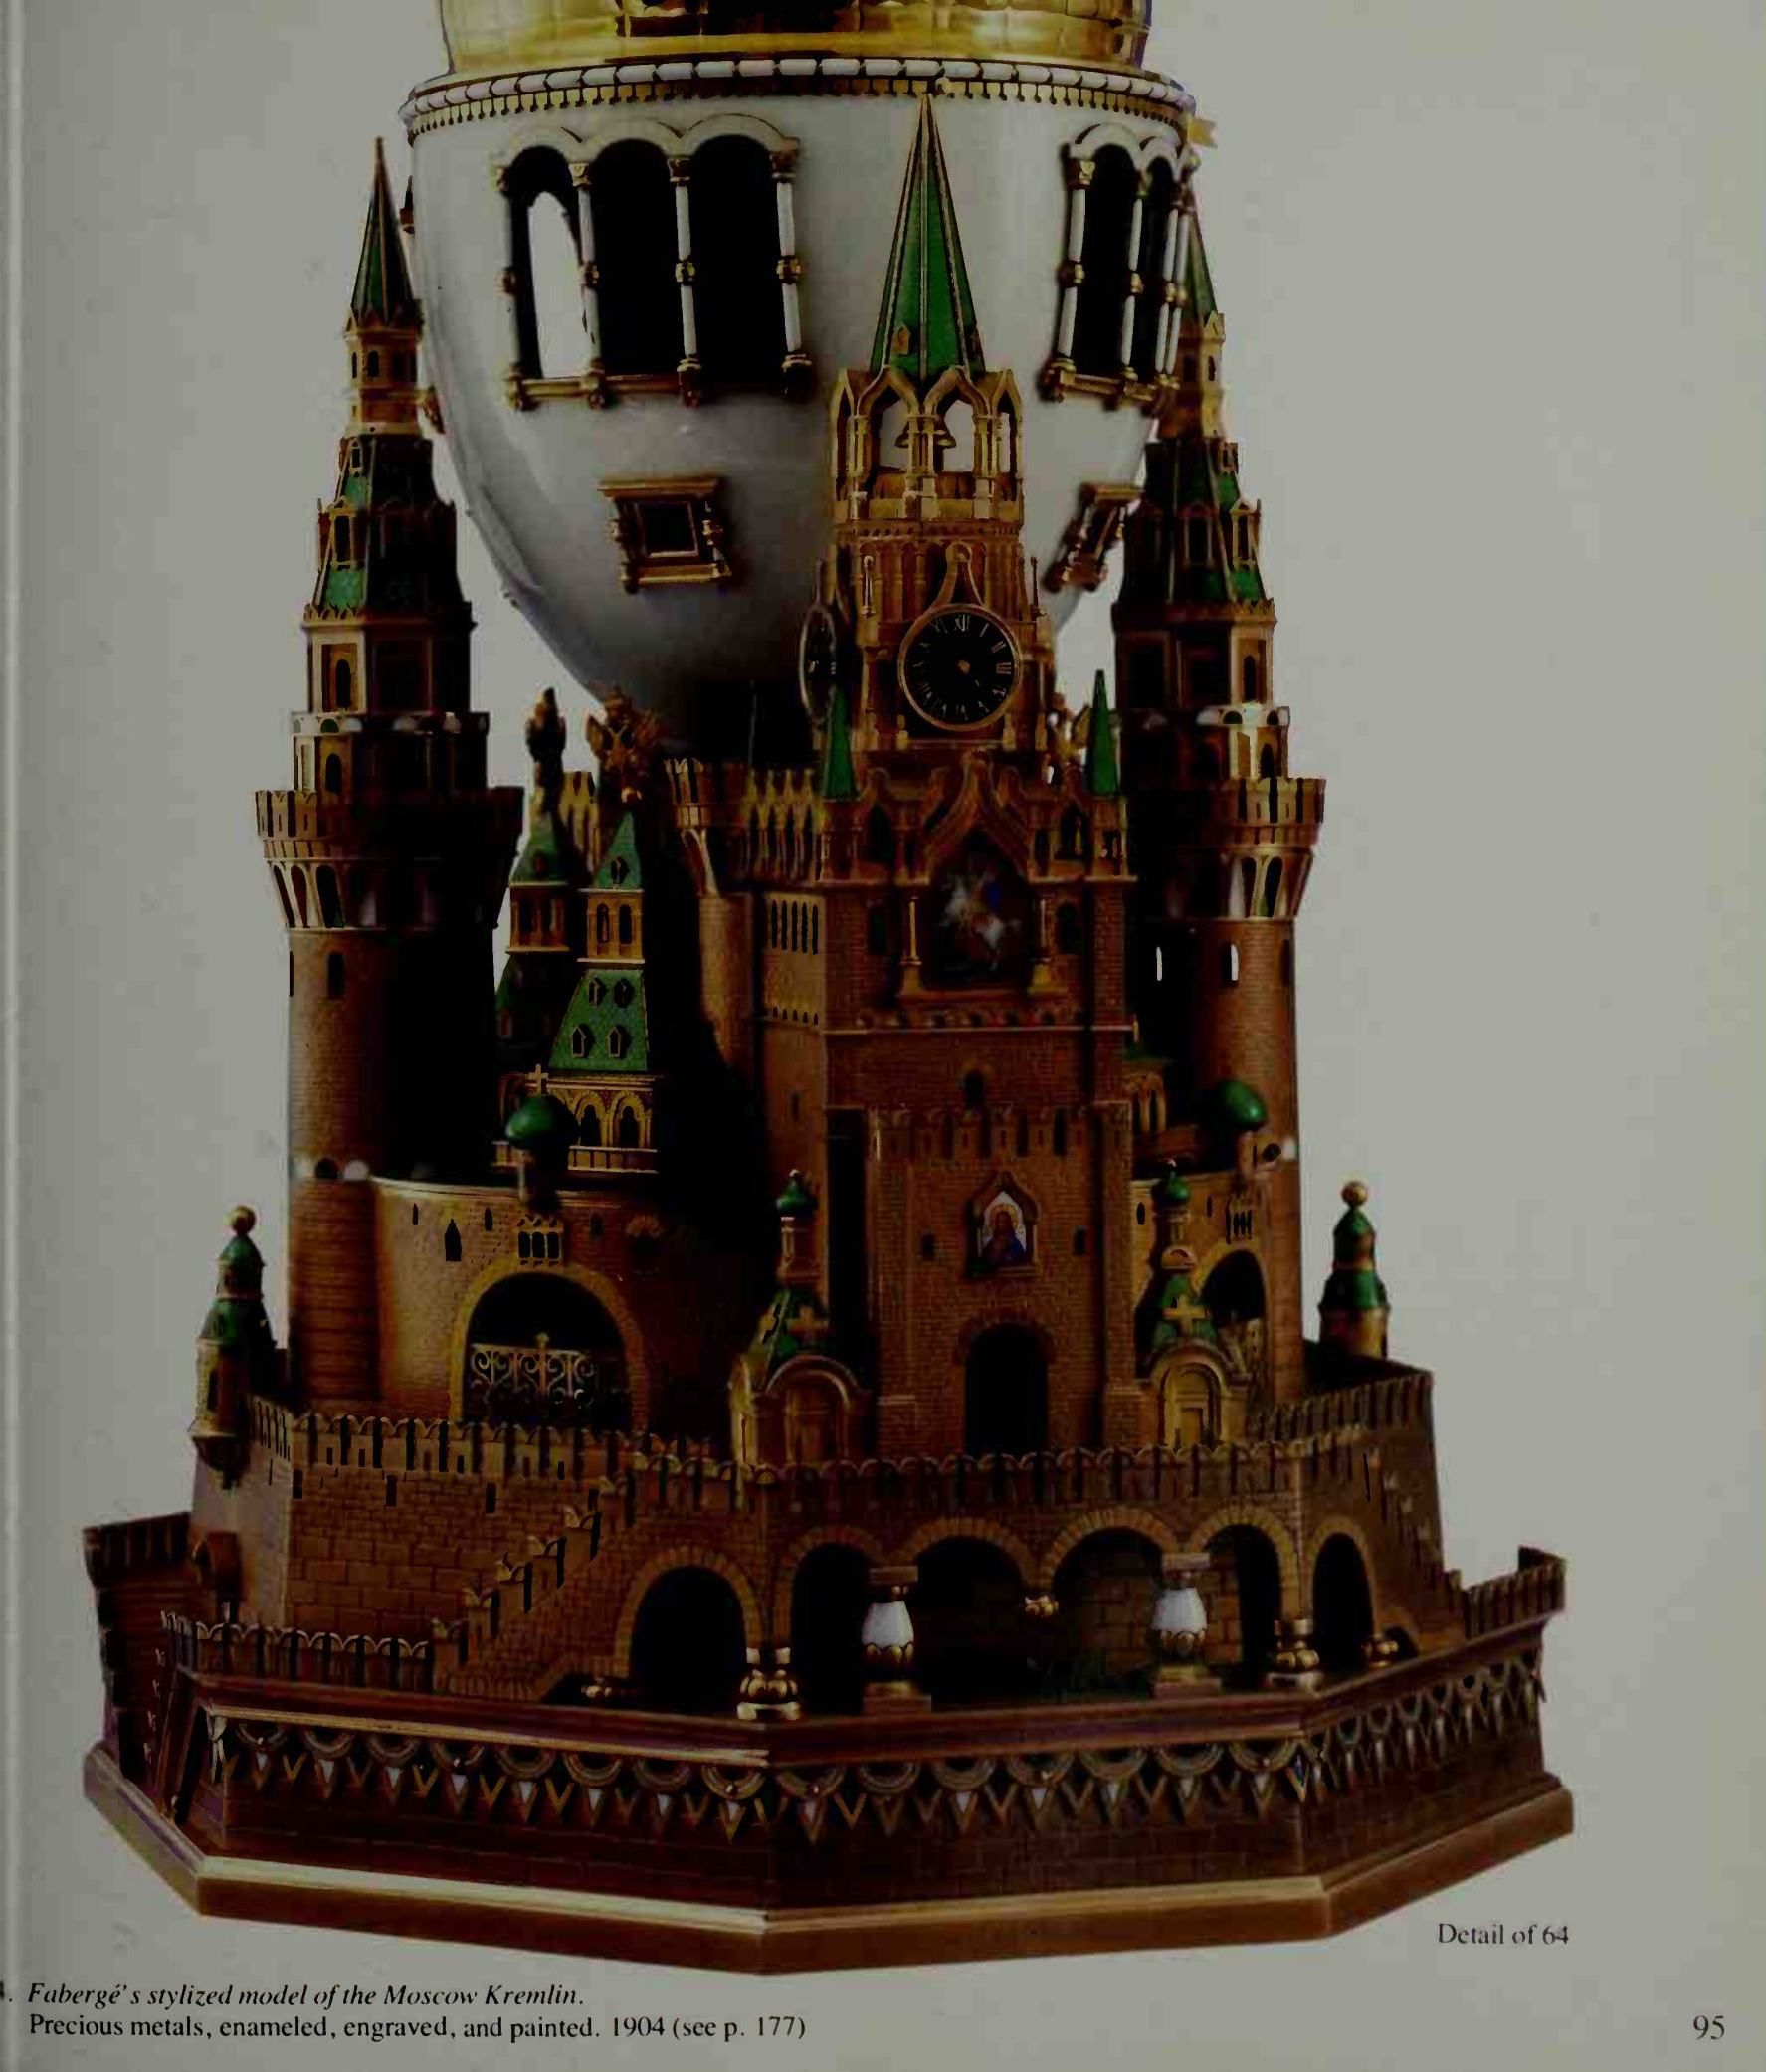 Treasures from the Kremlin. — New York : Metropolitan Museum of Art, 1979